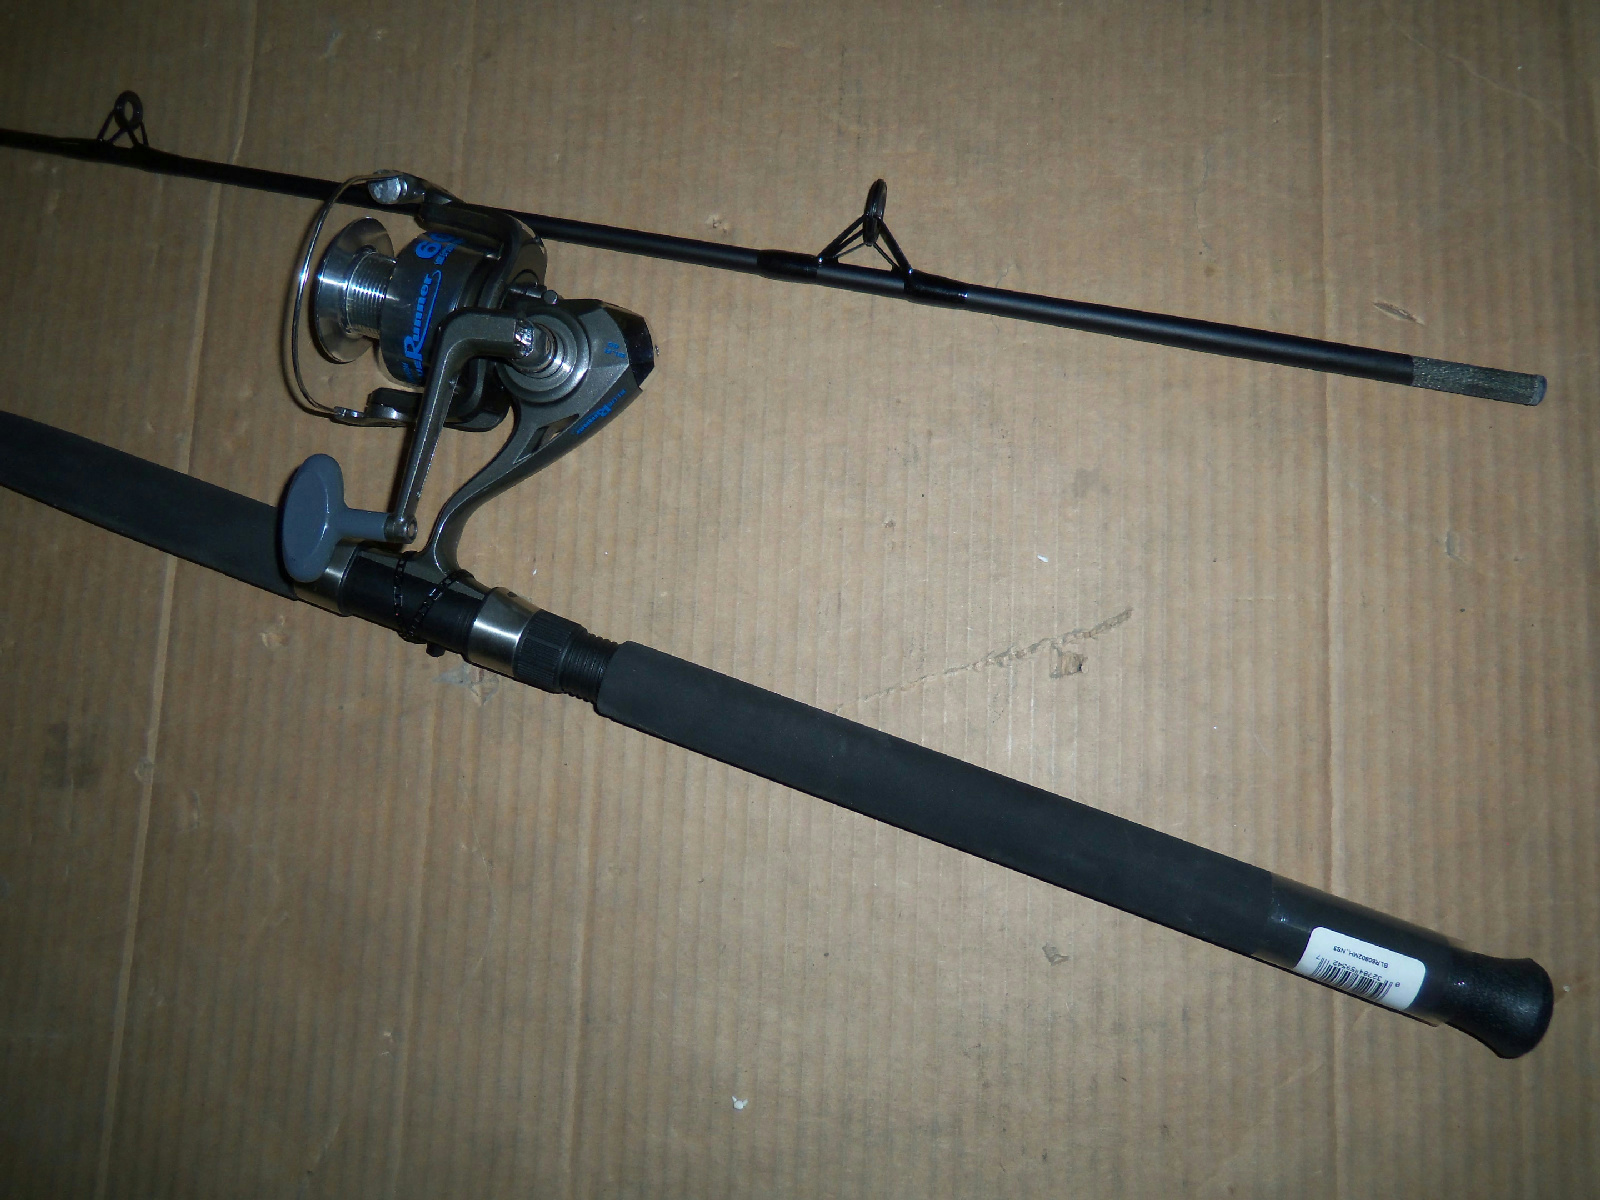 New open box quantum blr60f blrs802mh 2 pc spin fishing for Open reel fishing pole